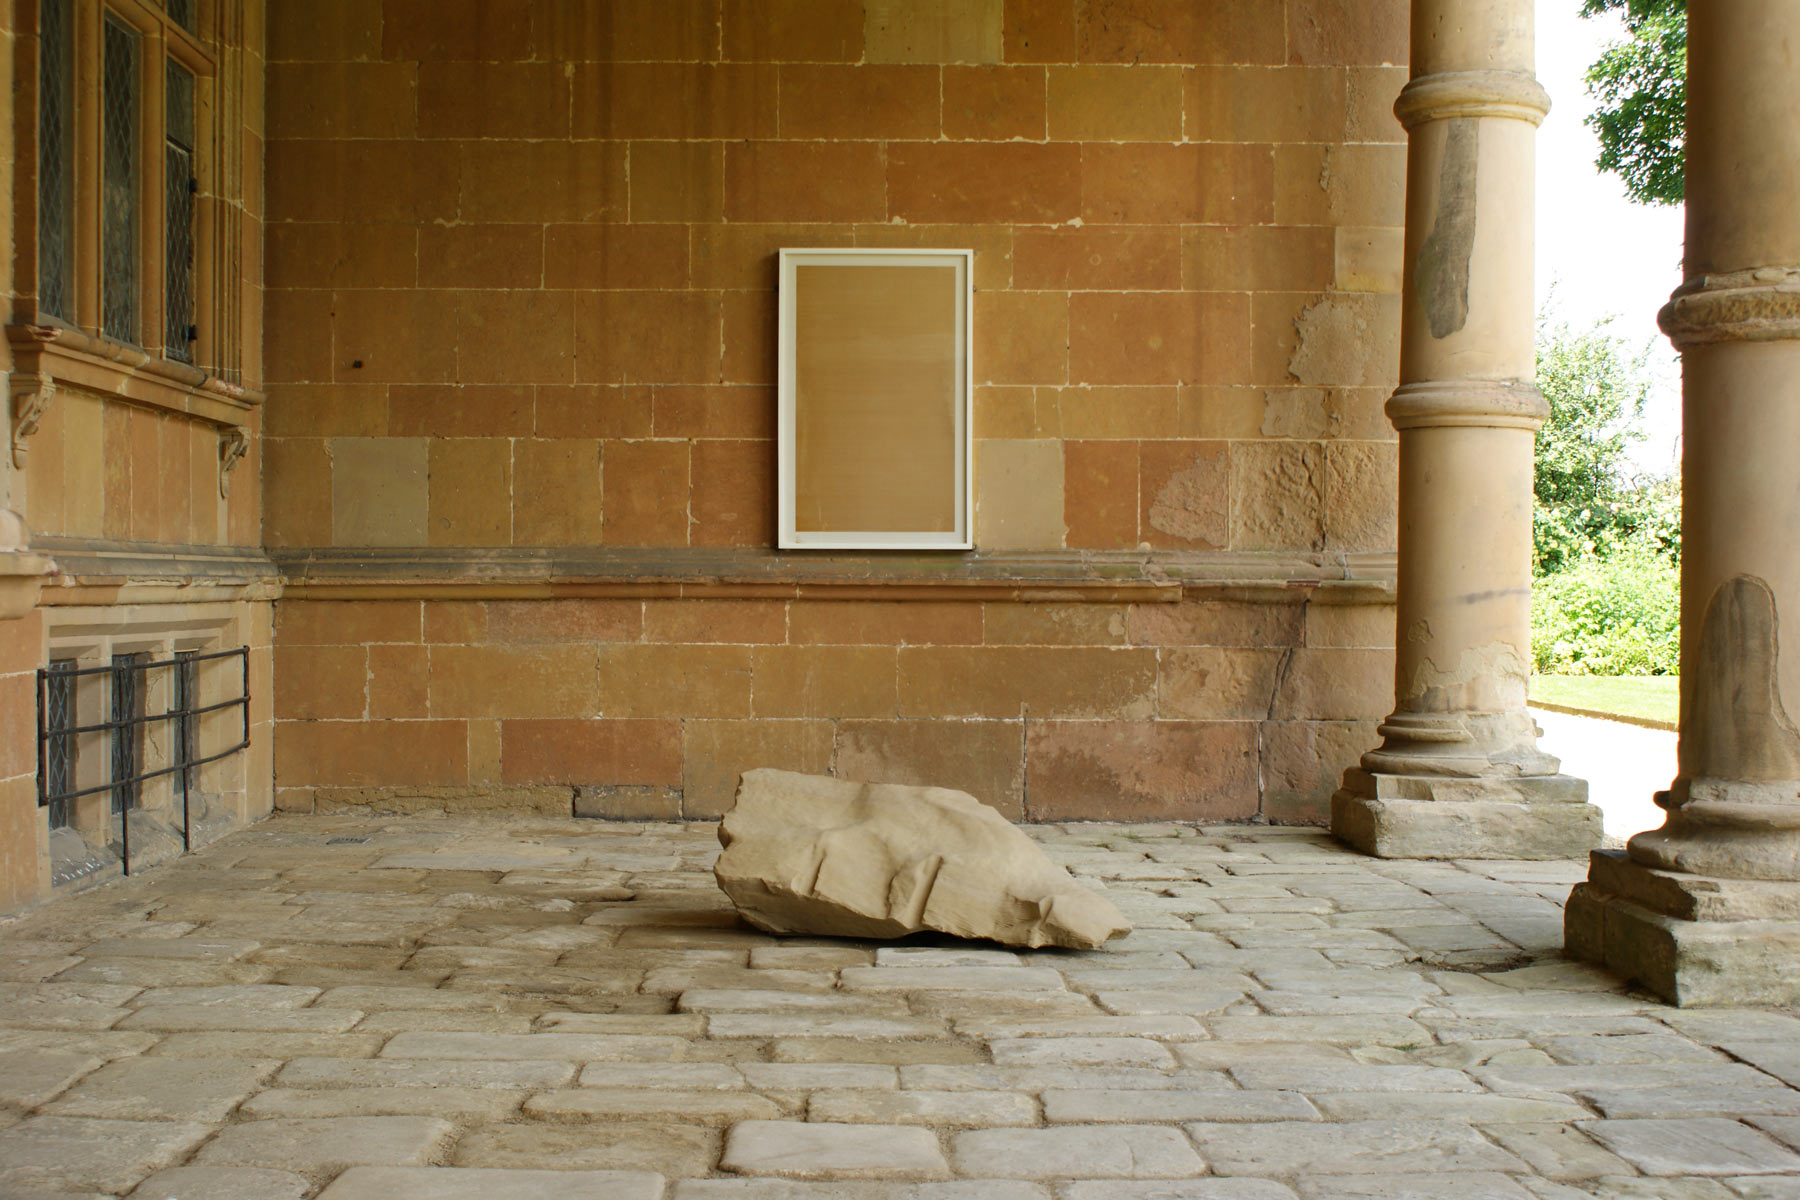 Alastair Mackie|Epitaph|2014|Meadow Arts|National Trust|Hardwick Hall|sculpture|installation